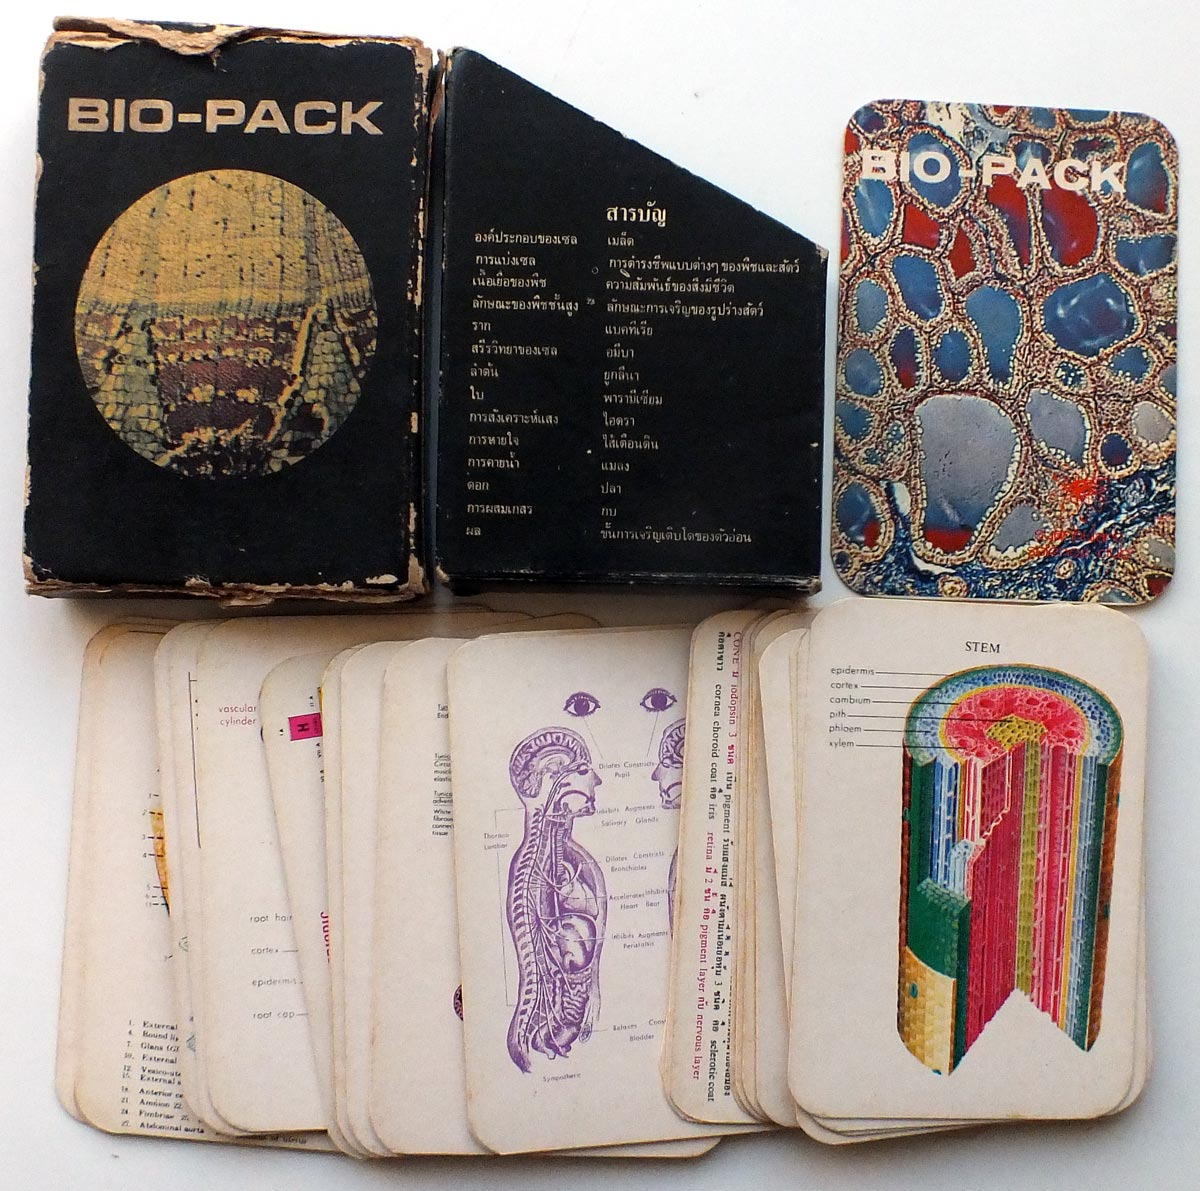 Bio-Pack biology flashcards produced for Thai students